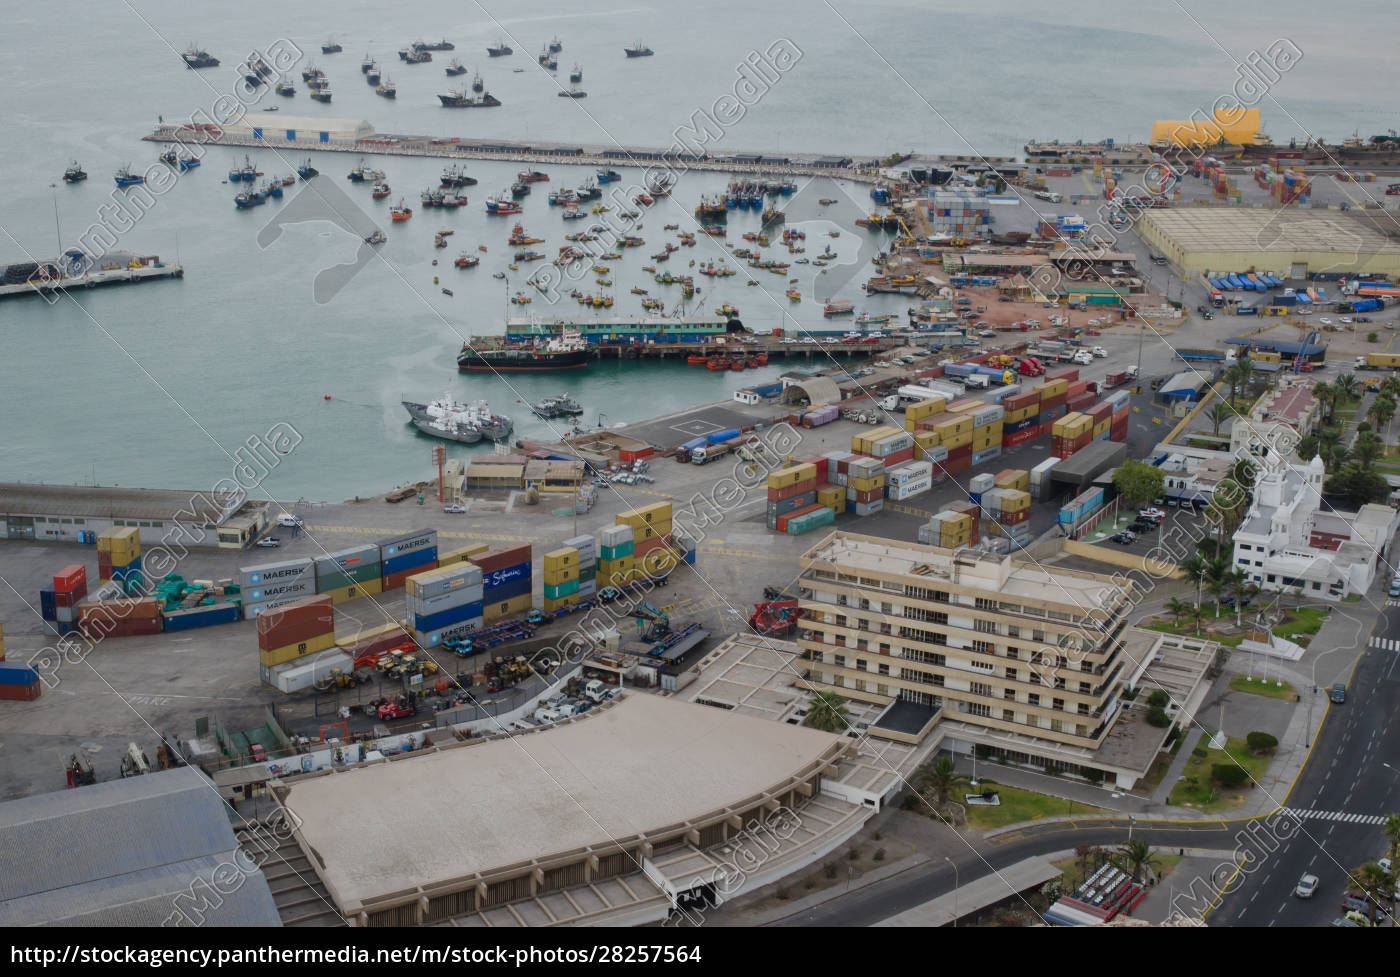 city, of, arica, with, the, arica - 28257564